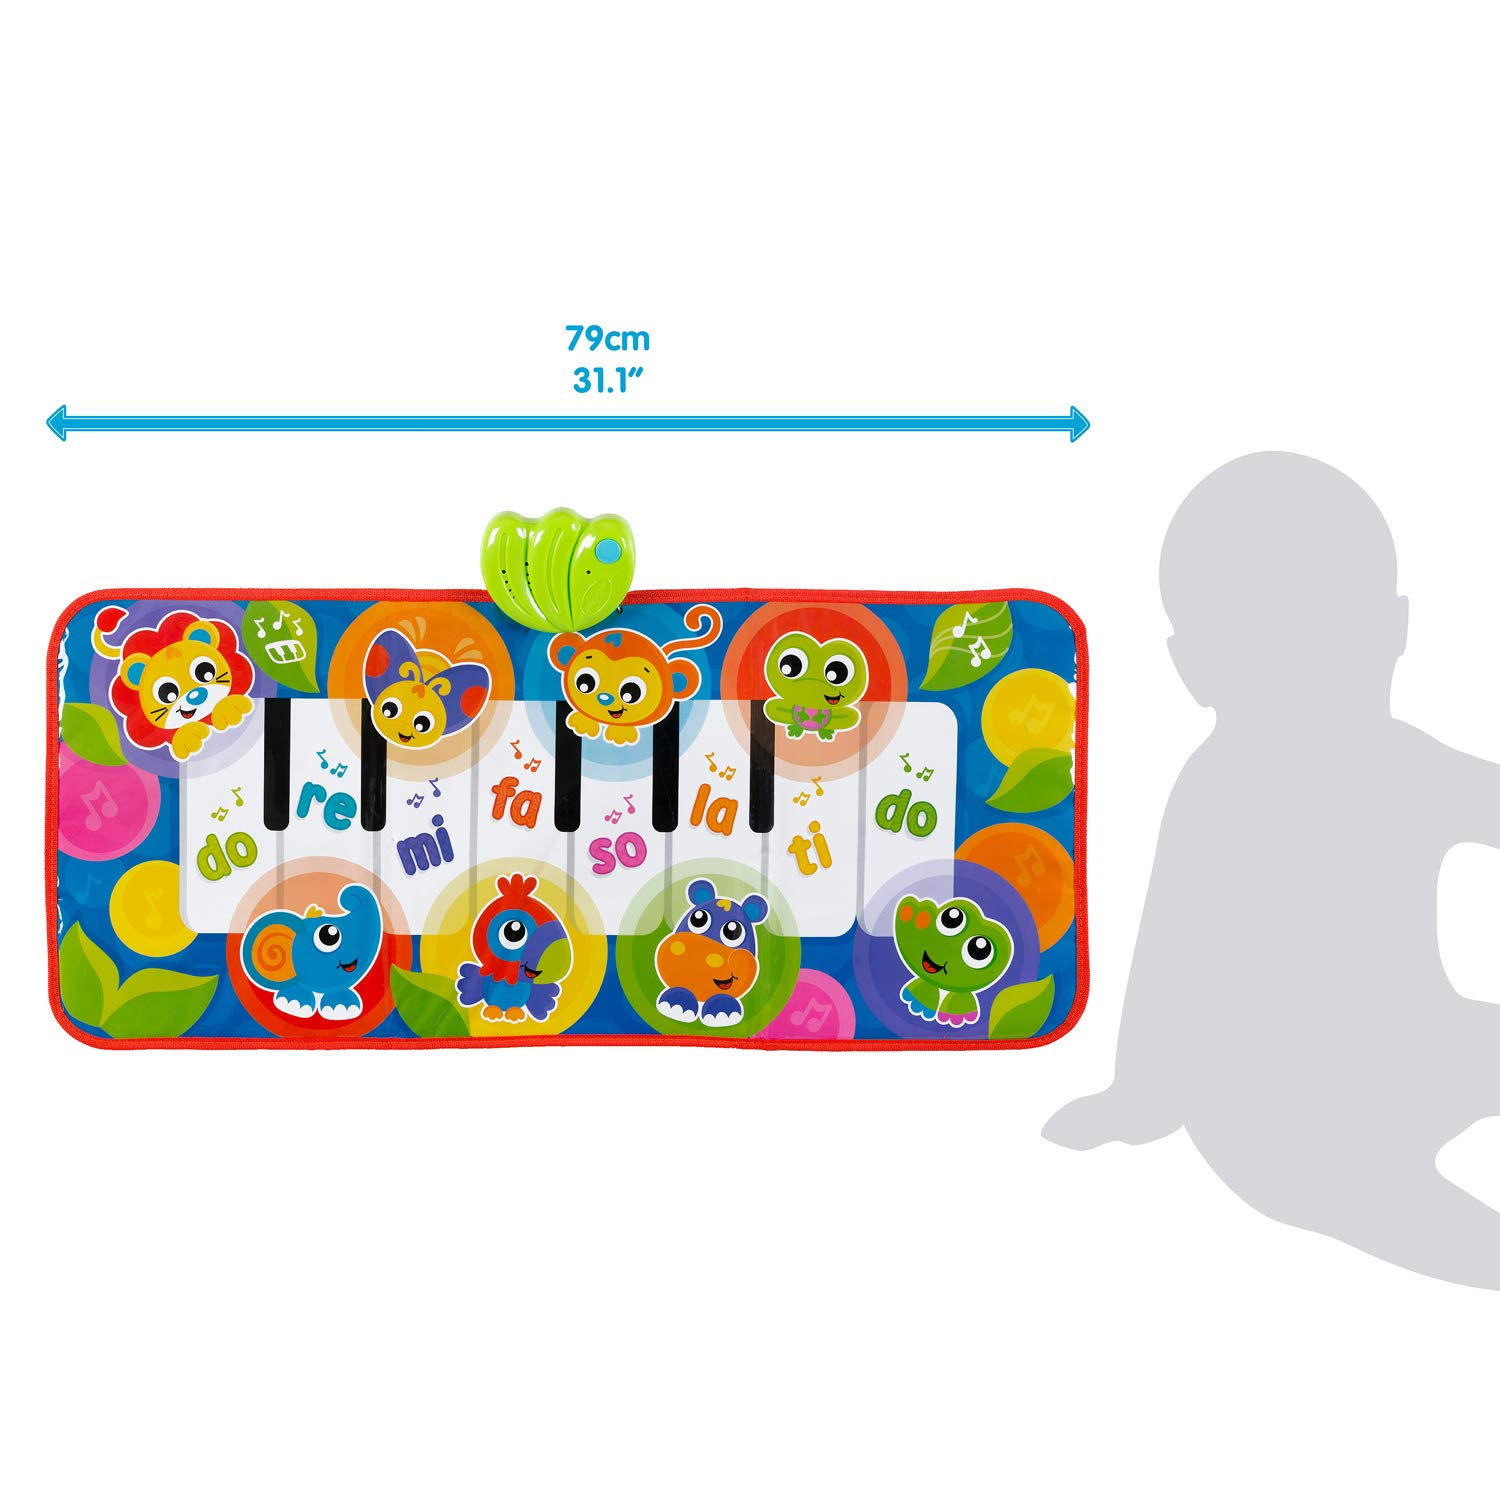 Great Start for a World of Learning Playgro Jumbo Jungle Musical Piano Mat for Baby Infant Toddler Child 0186995 Playgro is Encouraging Imagination with STEM//STEM for a Bright Future